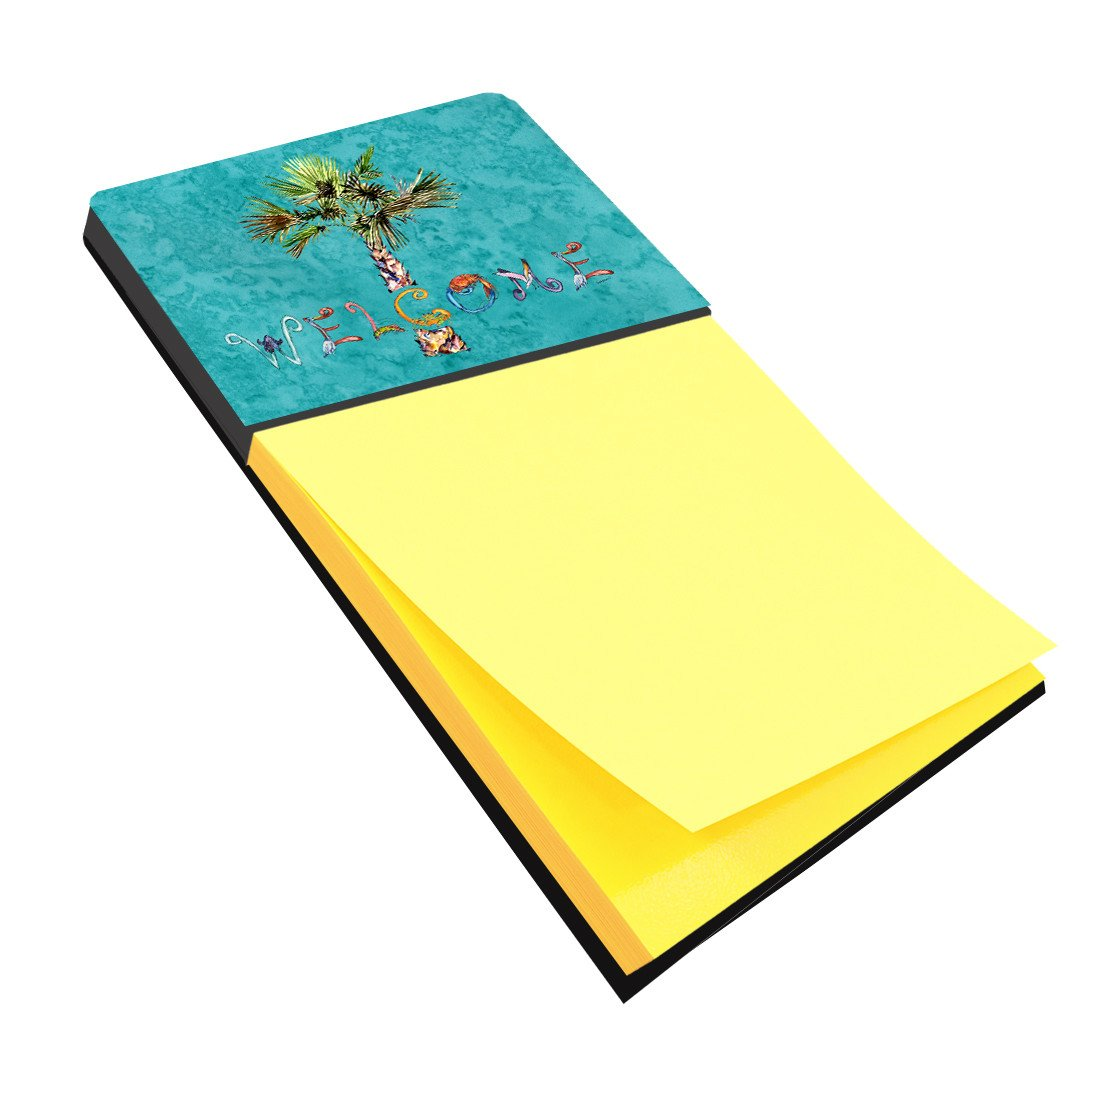 Welcome Palm Tree on Teal Sticky Note Holder 8711SN by Caroline's Treasures